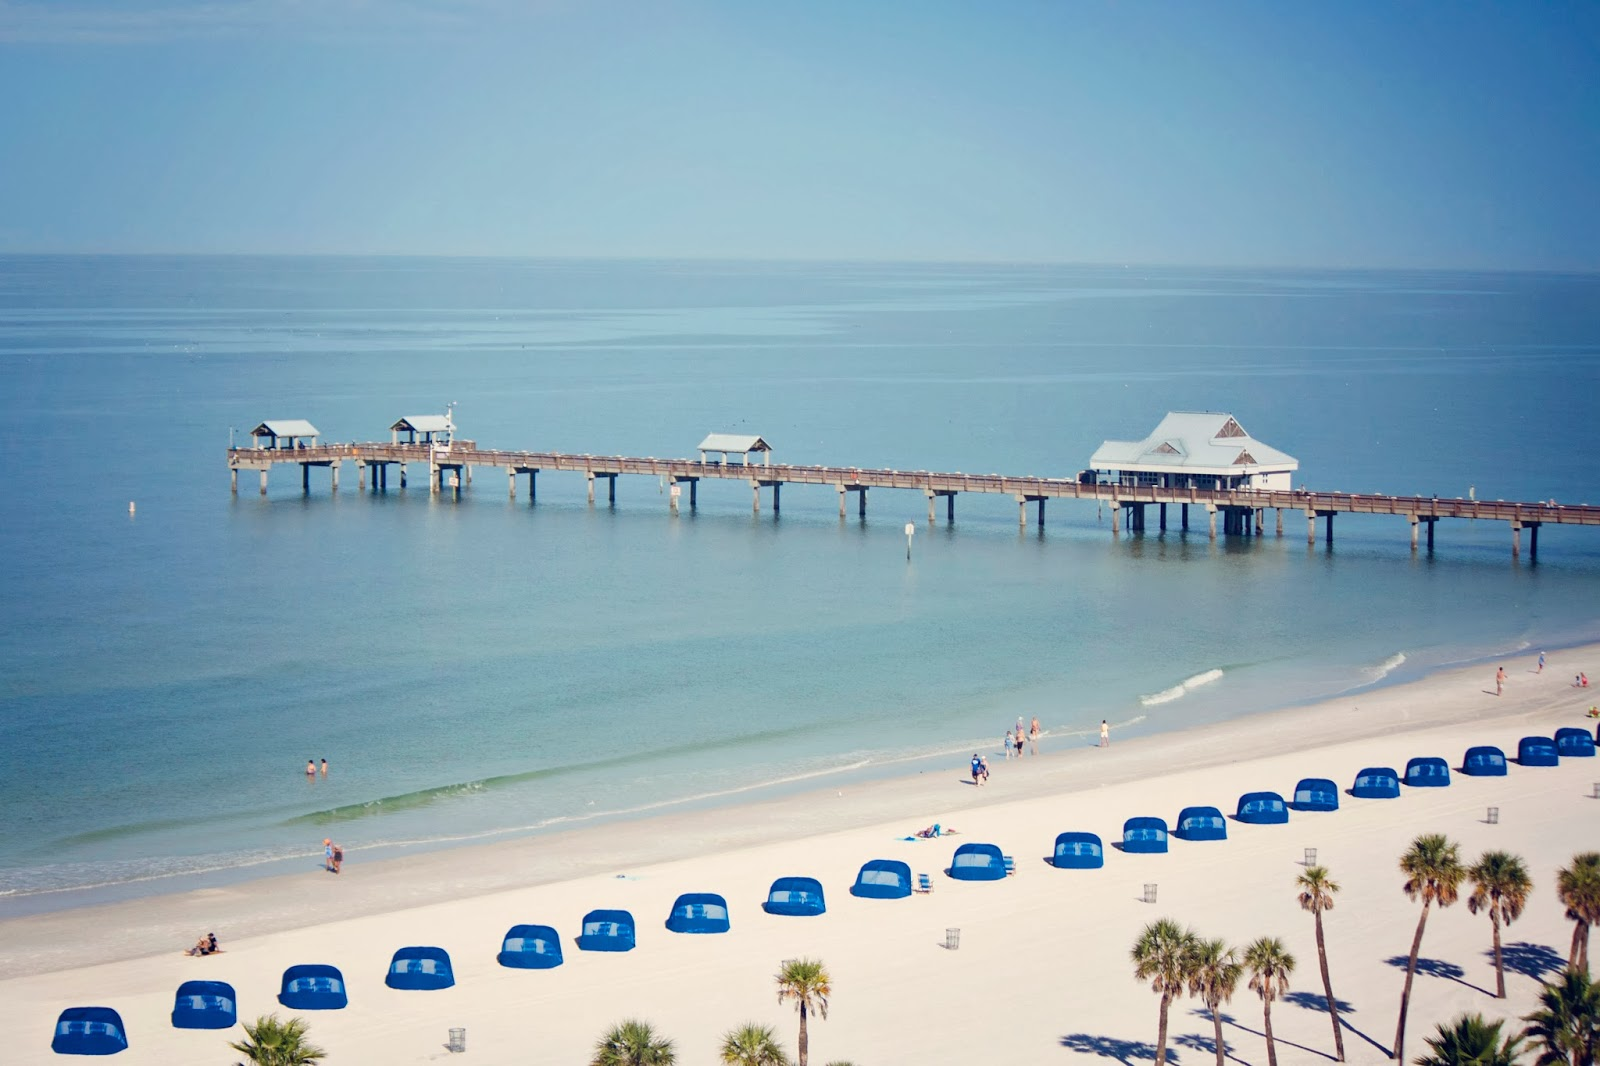 Bluff creek blessings clearwater beach florida for Fishing clearwater beach fl